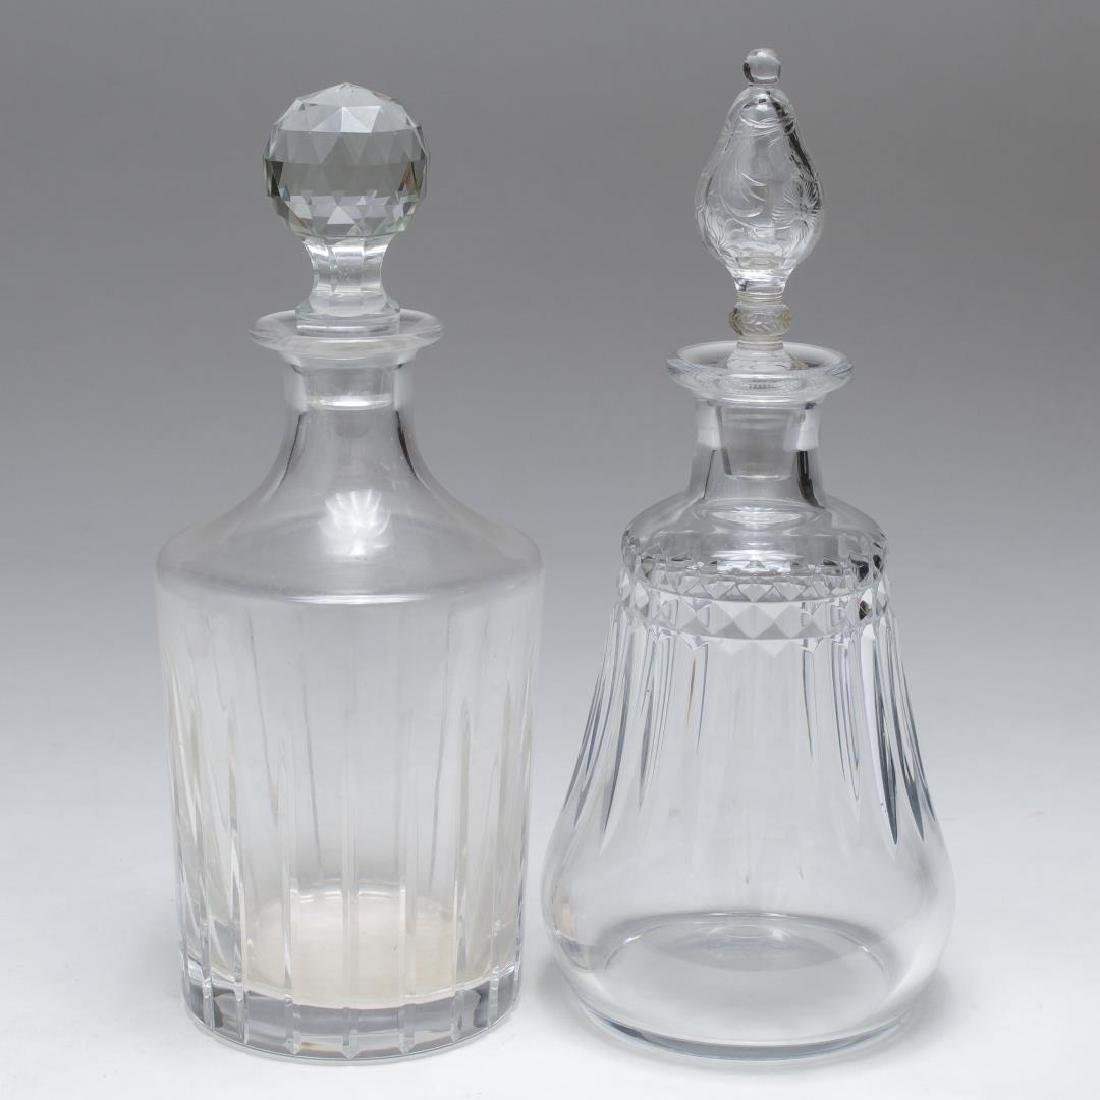 Christofle & Baccarat Lead Crystal Decanters, 2